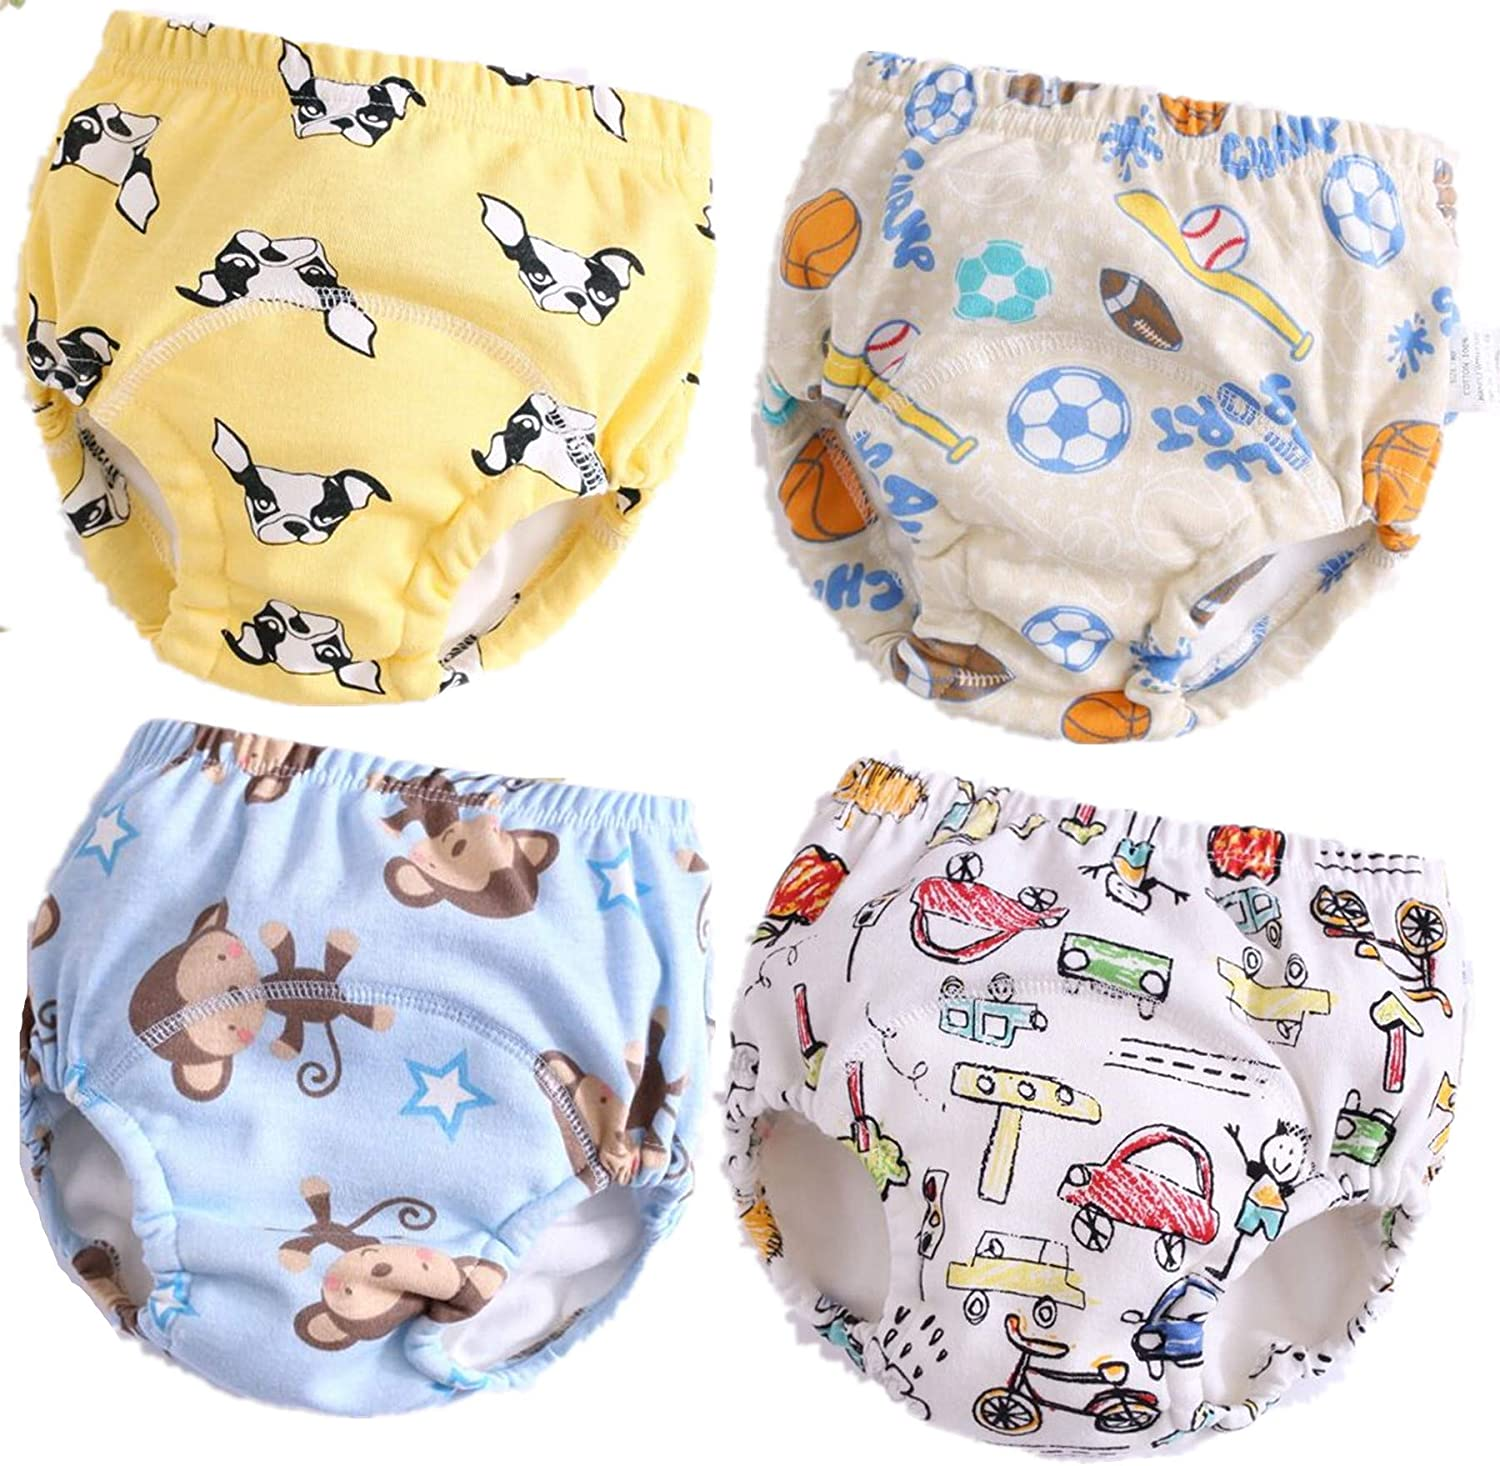 B, 4T Baby Cotton Training Pants 4 Pack Padded Toddler Potty Training Underwear for Girls 12M-4T